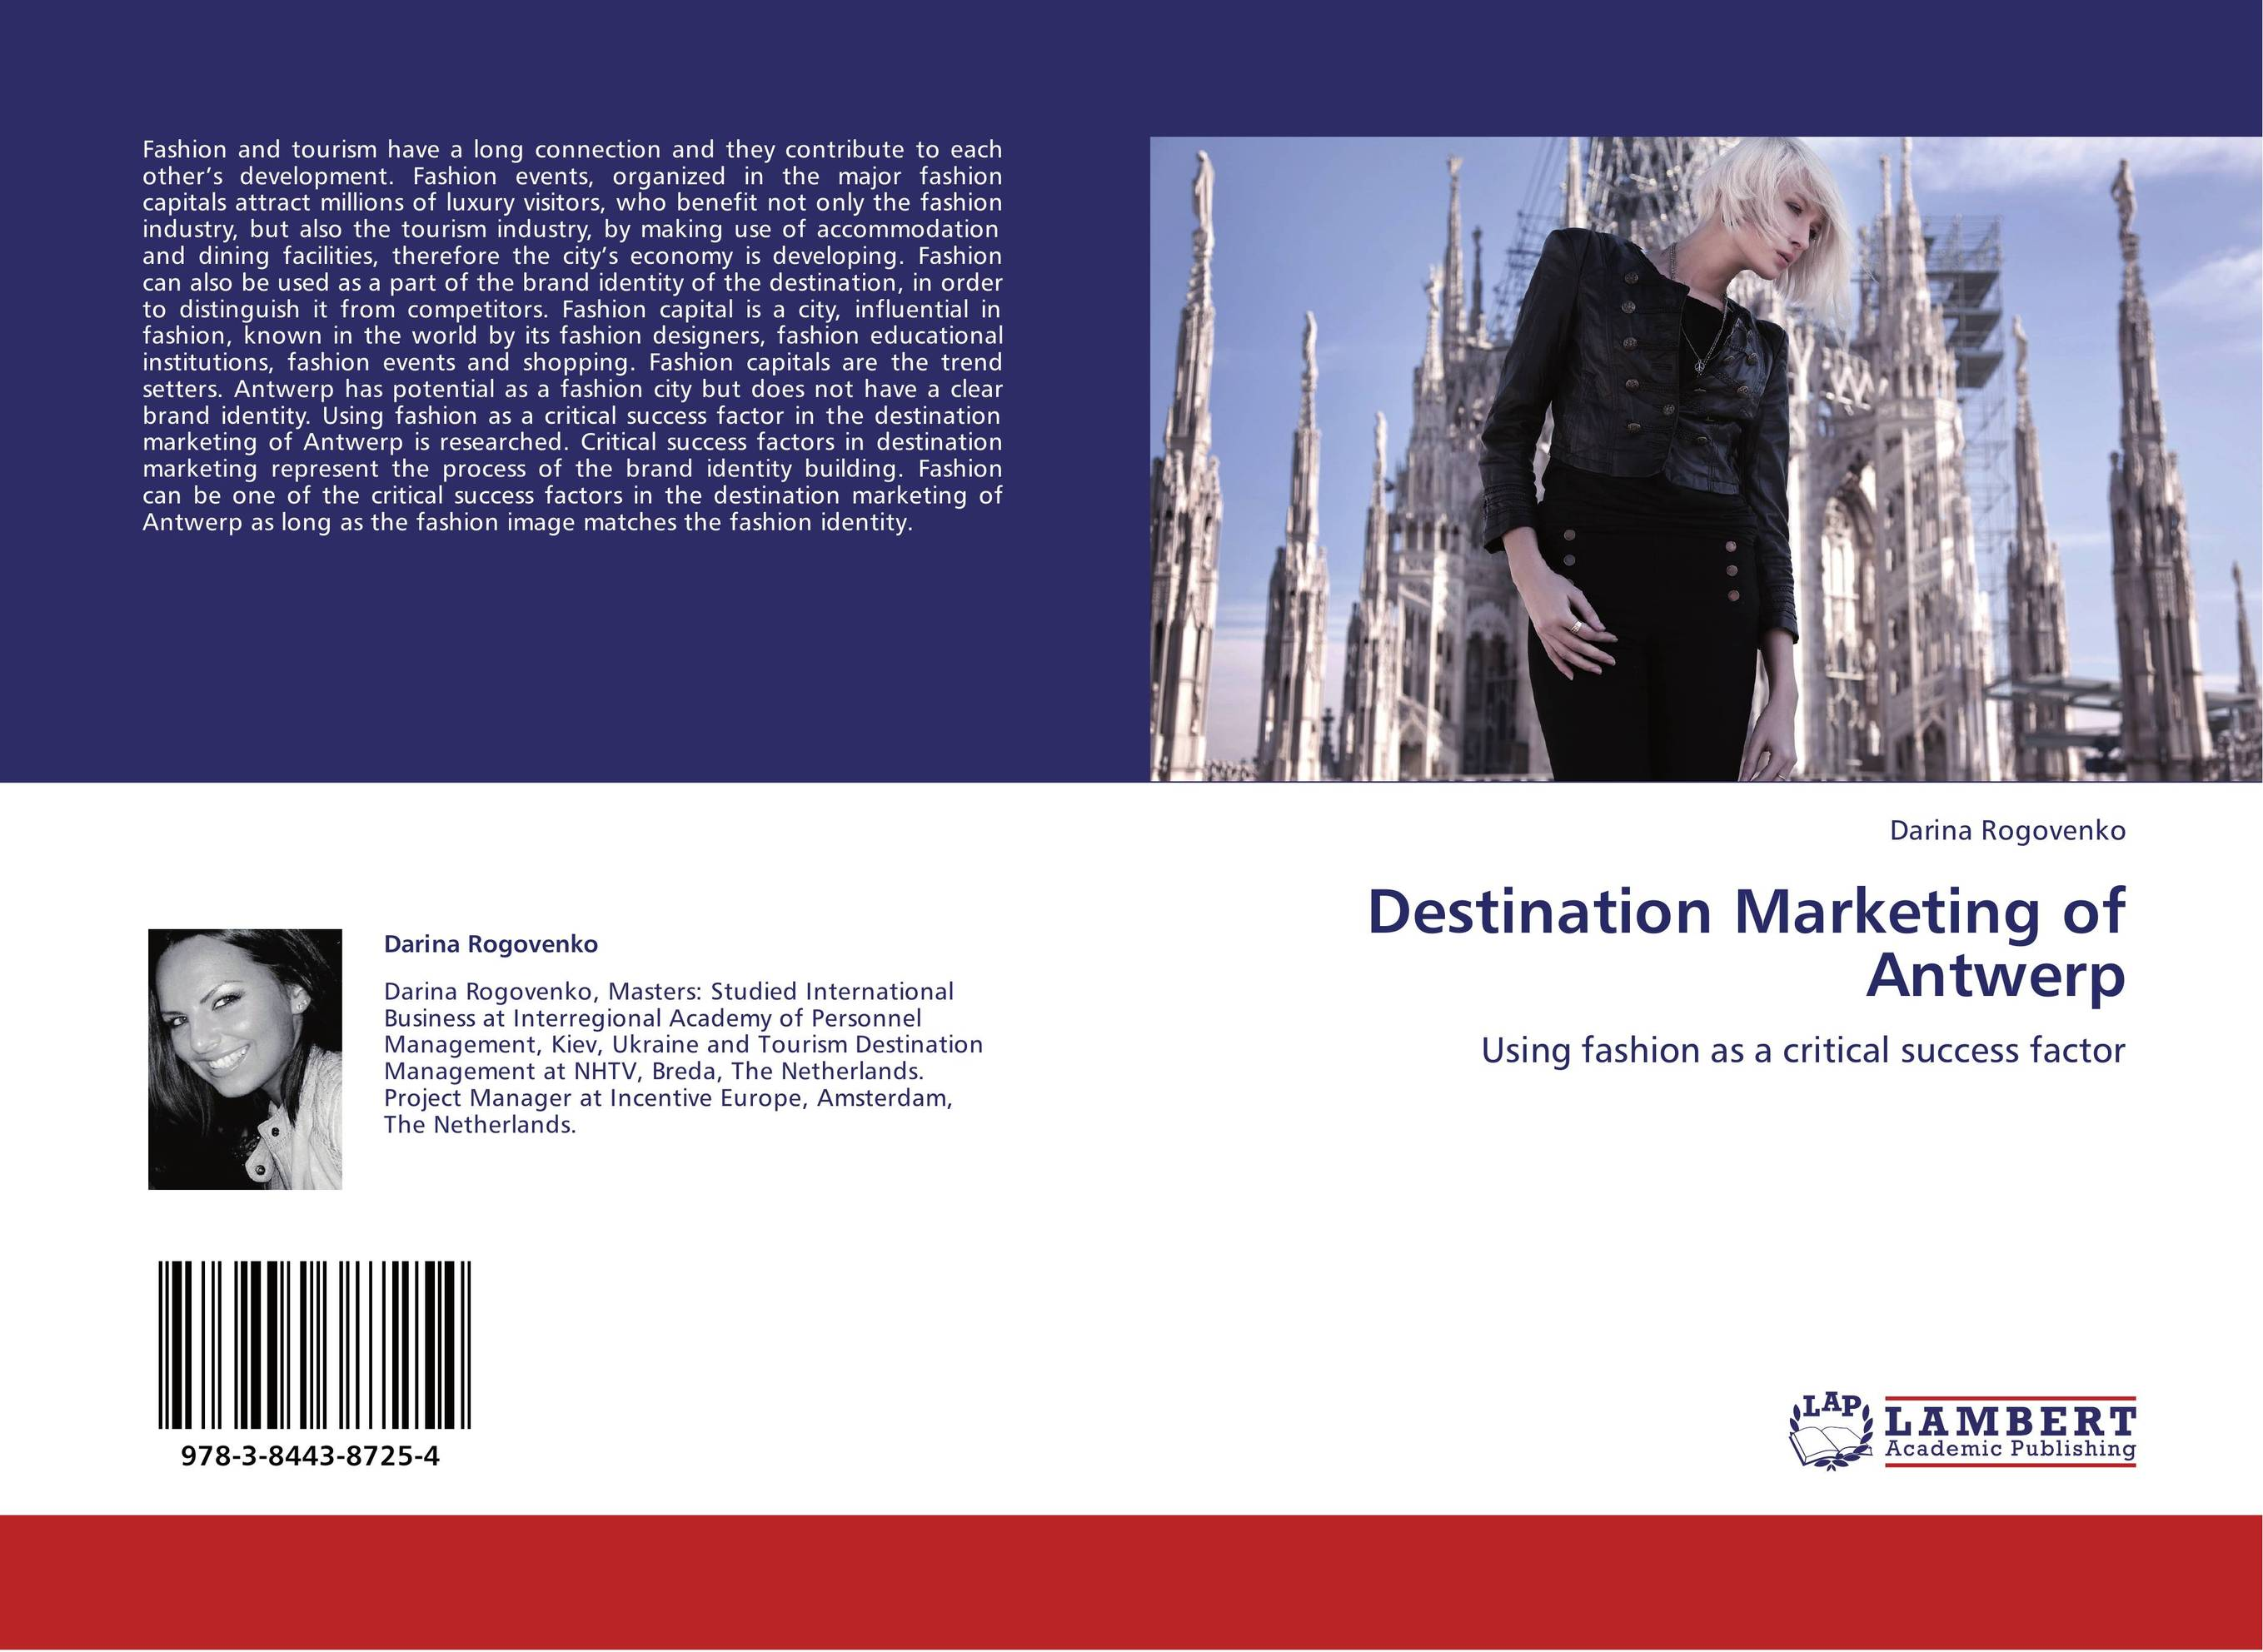 destination marketing for the development of It integrates disparate themes in destination marketing and recognizes the relationships between marketing stimuli, customer experiences, and marketing outcomes a comprehensive and coherent theoretical model is established to explain the complexities involved in the formation of important.